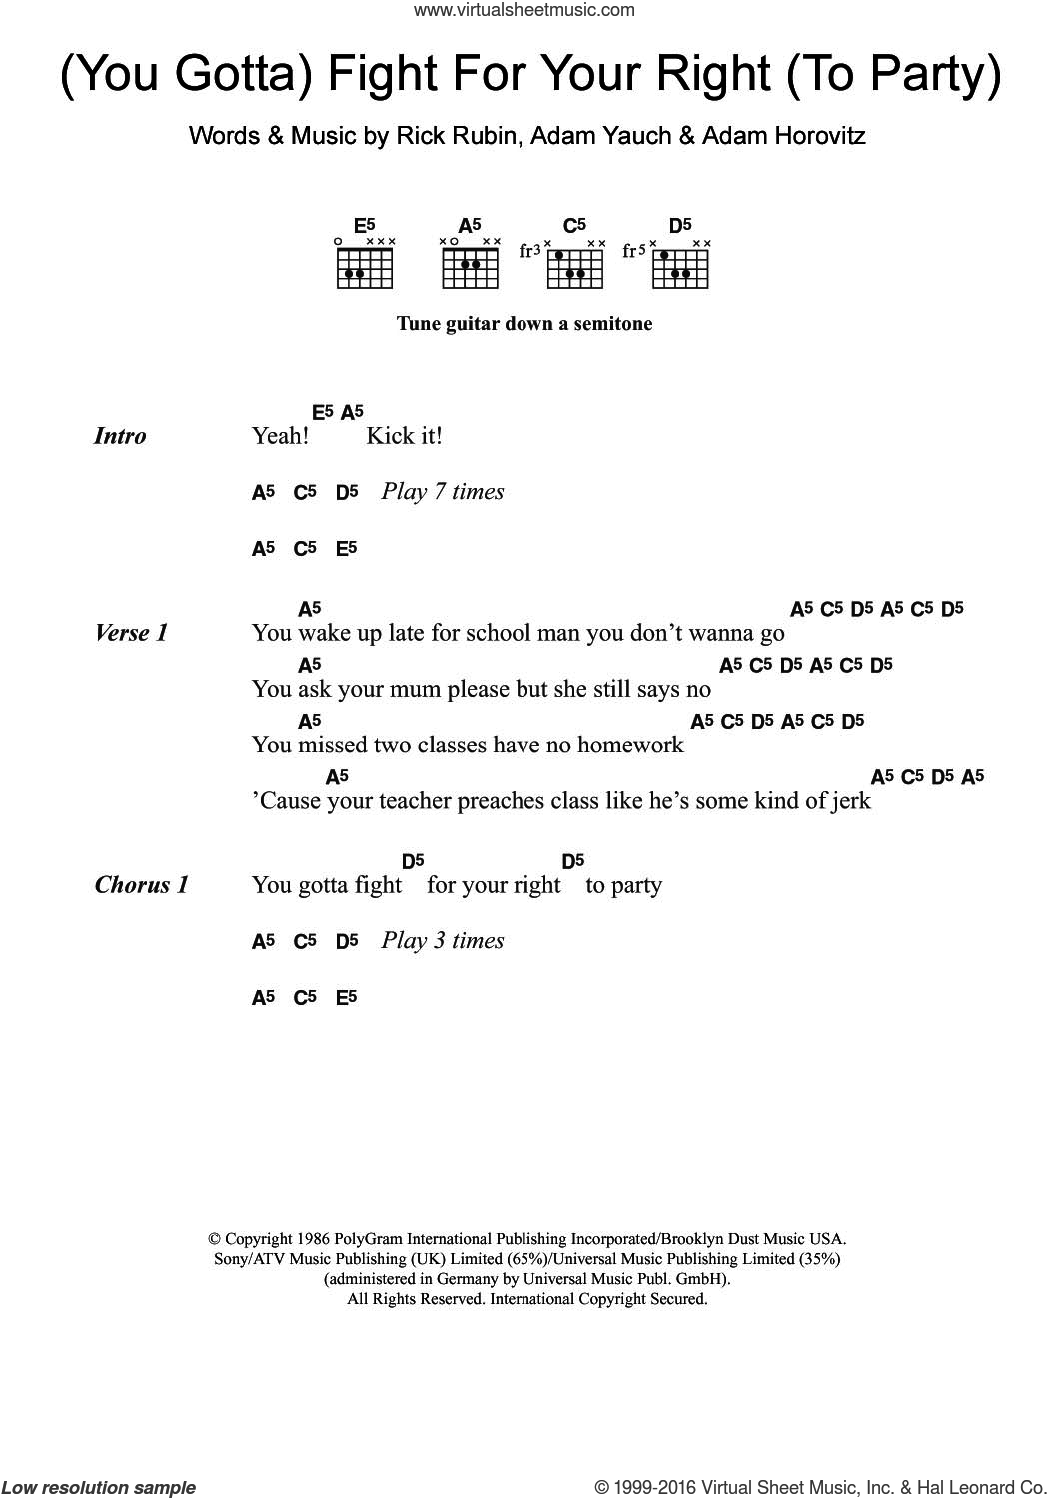 (You Gotta) Fight For Your Right (To Party) sheet music for guitar (chords) by Beastie Boys, Adam Horovitz, Adam Yauch and Rick Rubin, intermediate skill level